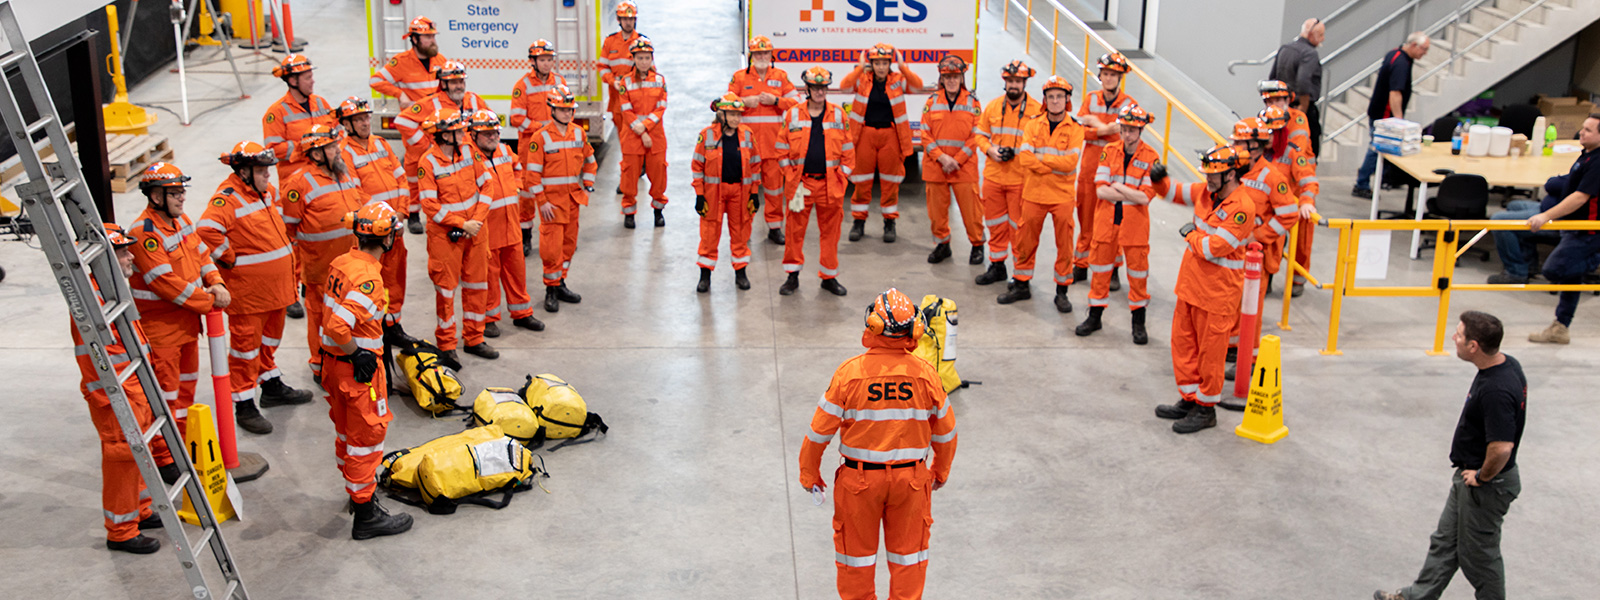 SES personnel receive a briefing before starting training.